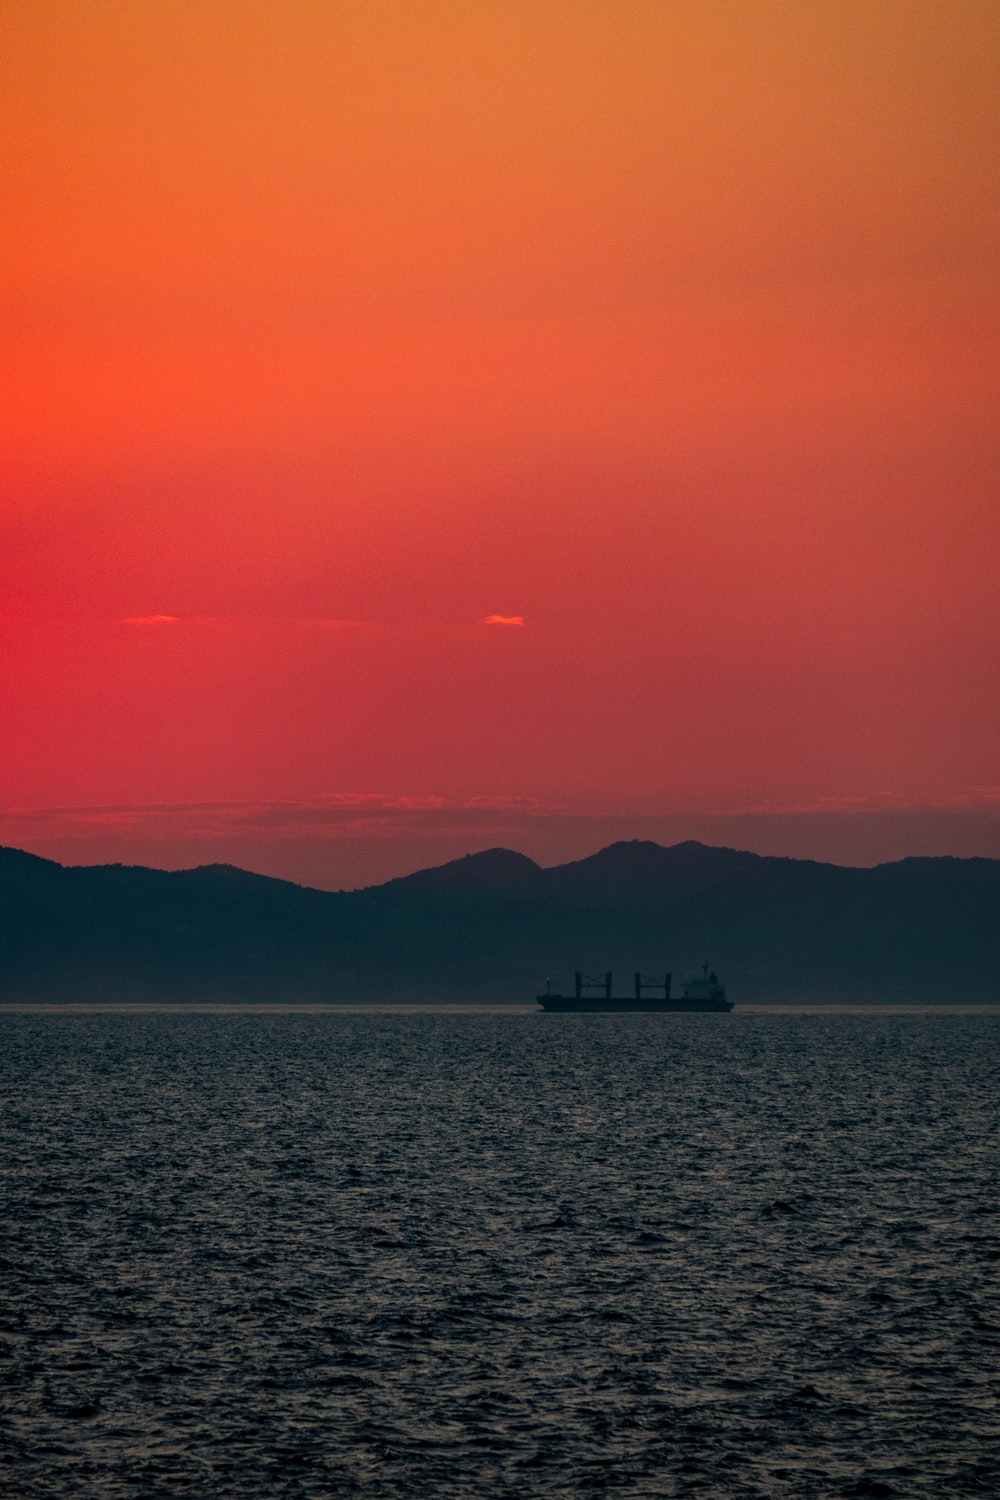 sillhoutte photography of ship in the sea during golden hour